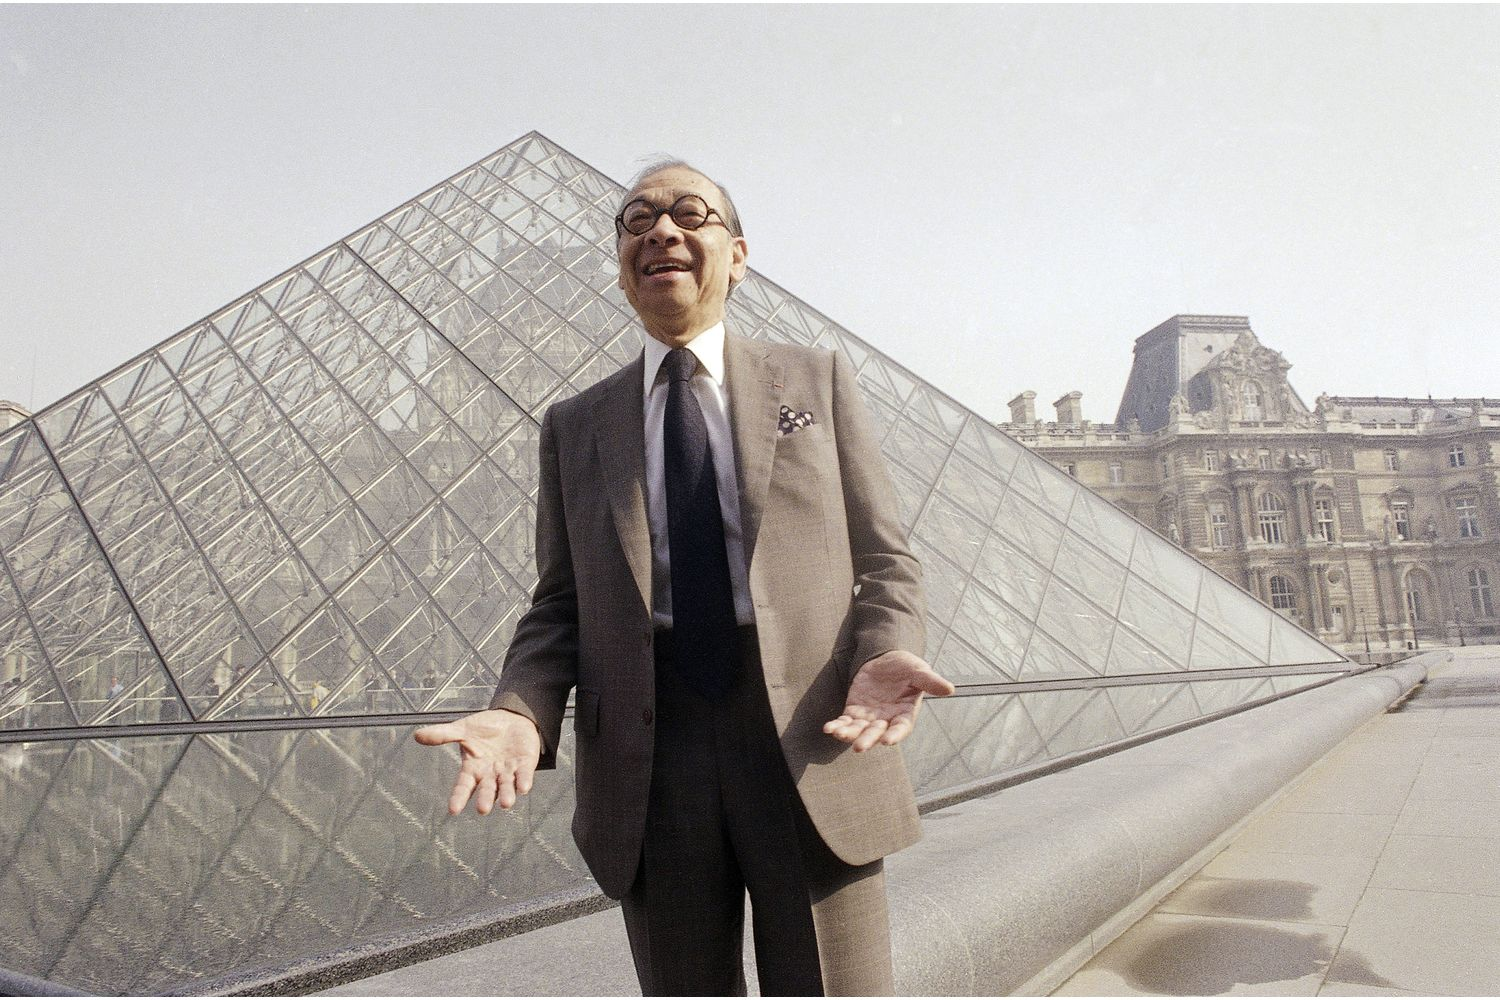 Louvre Pyramid architect dies at 102